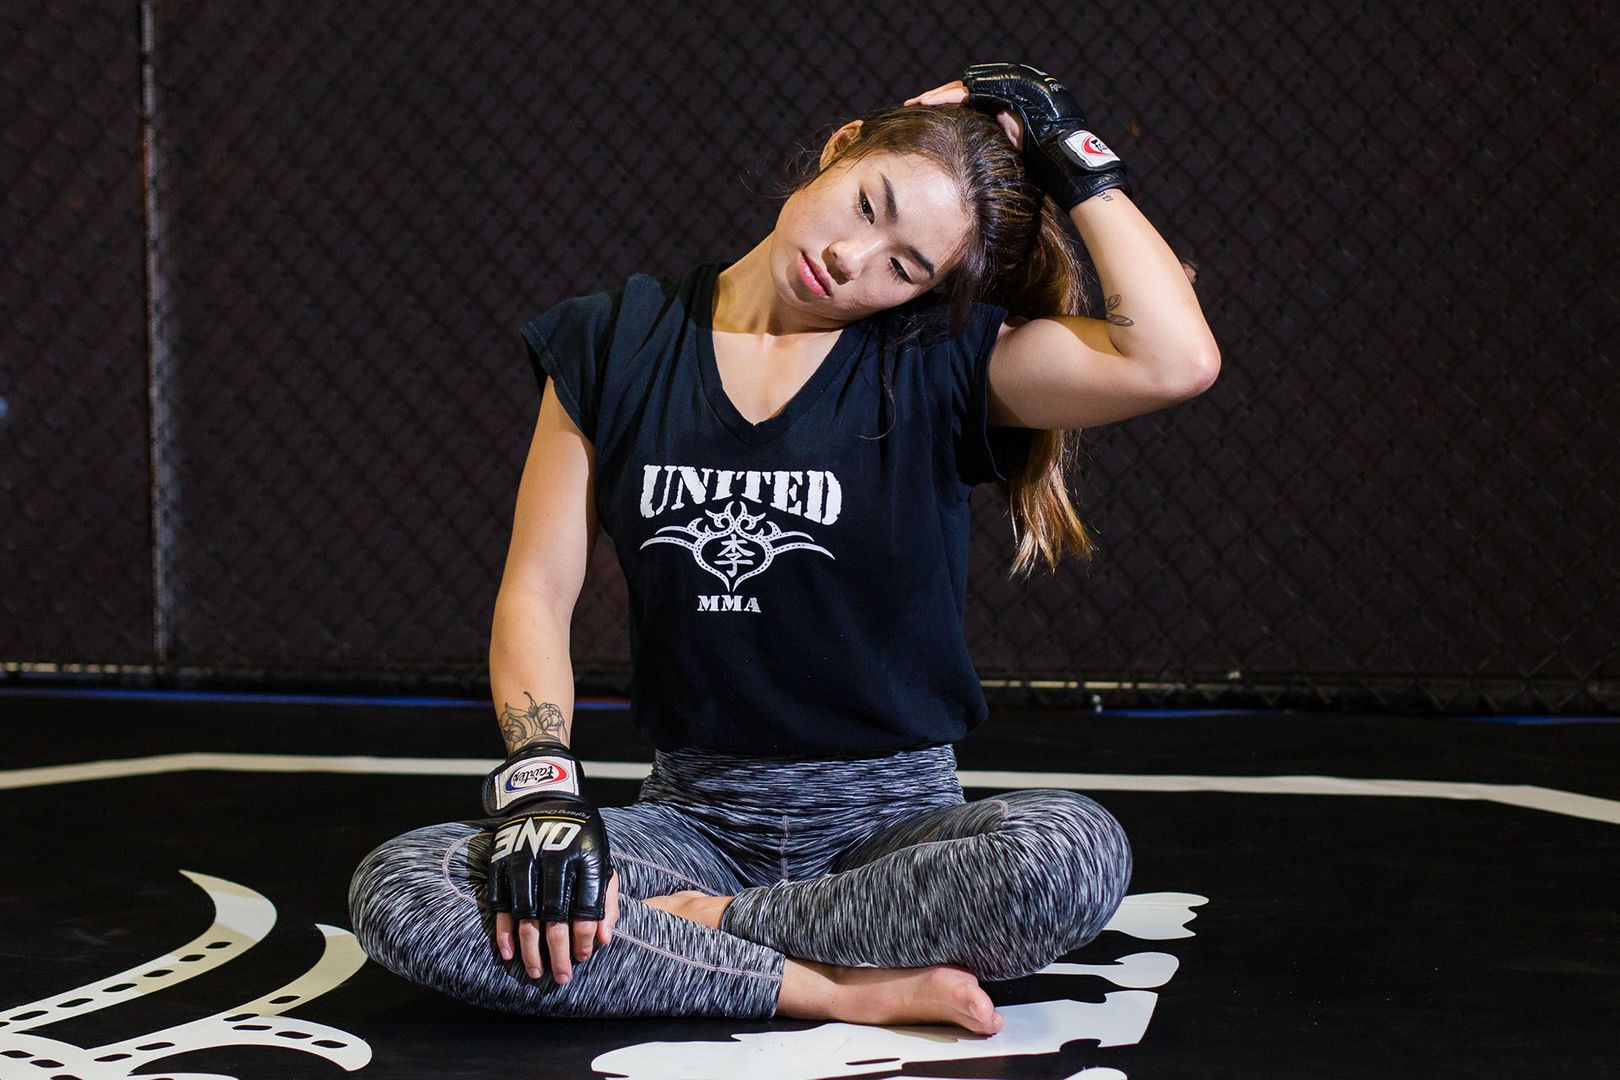 Angela Lee stretches her neck at United MMA in Hawaii